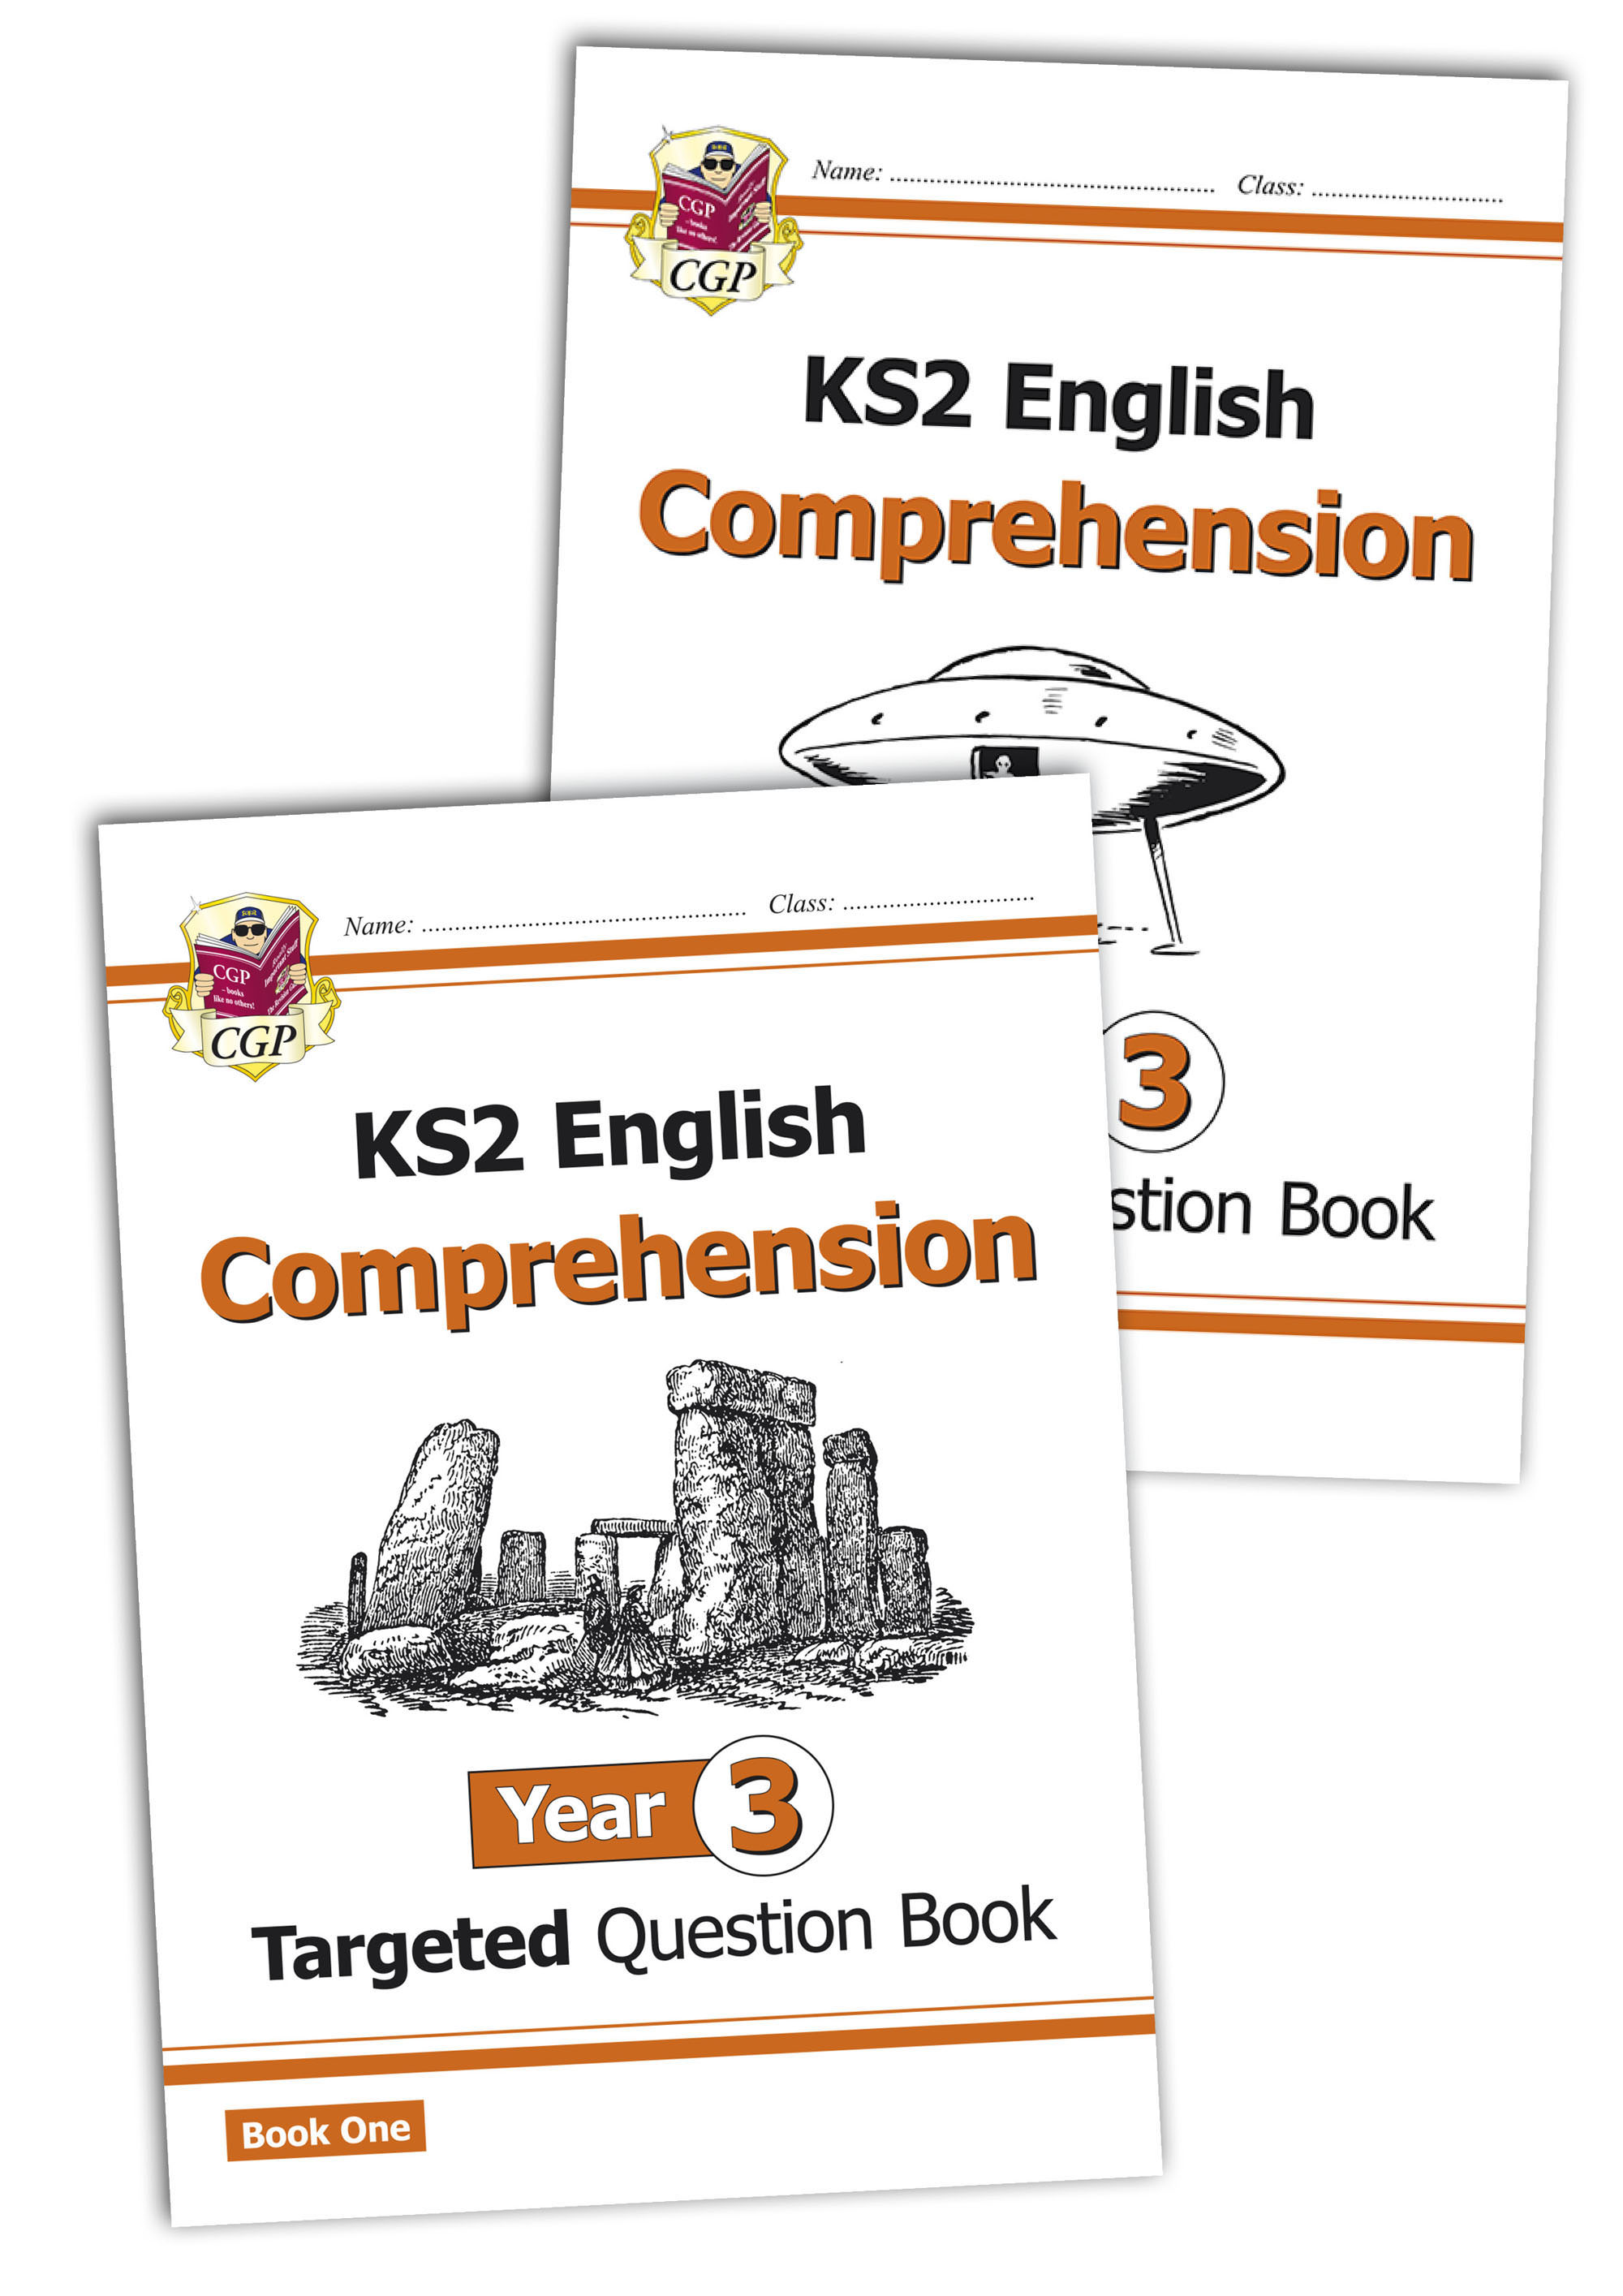 E3CWB21 - New KS2 English Targeted Question Book: Year 3 Comprehension - Book 1 & 2 Bundle